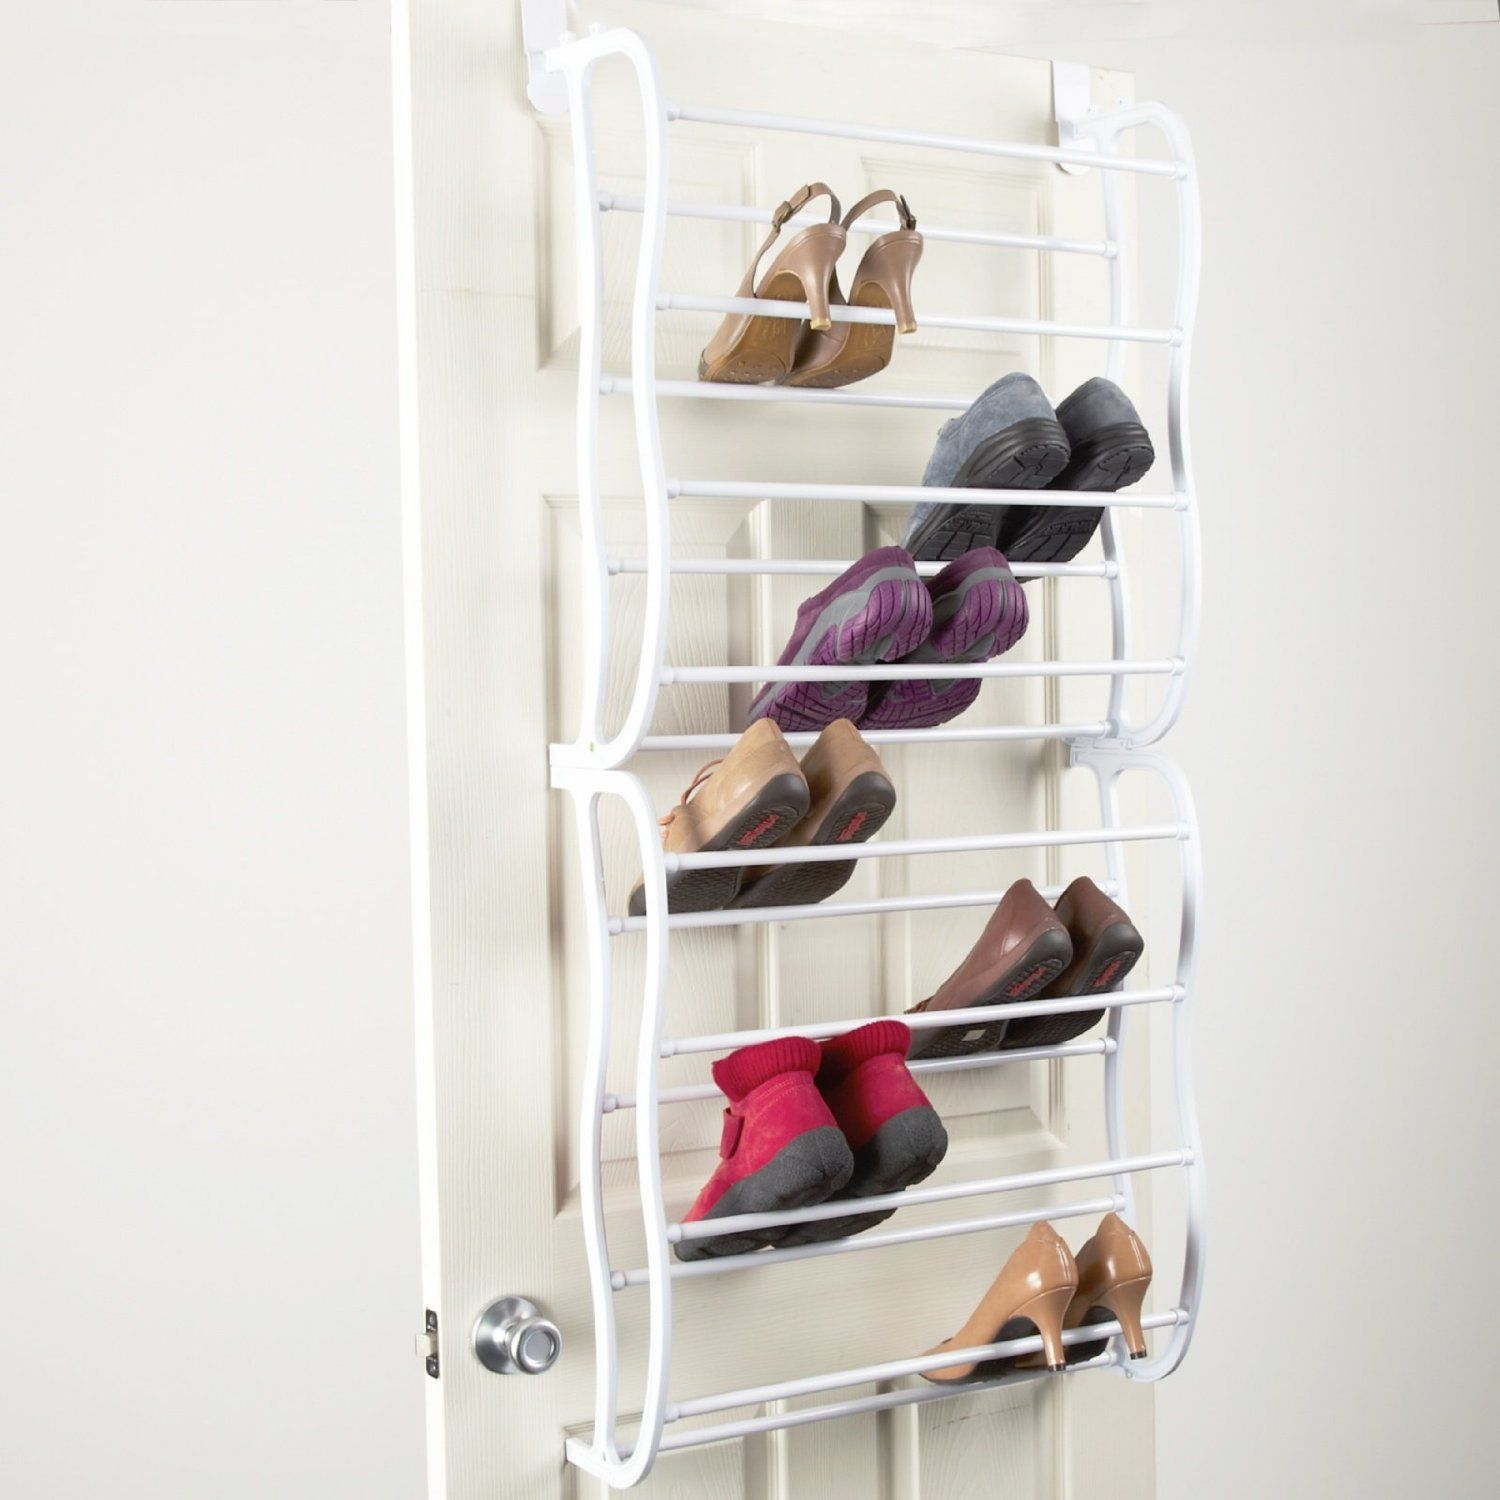 wall mounted shoe rack ideas Design Pinterest